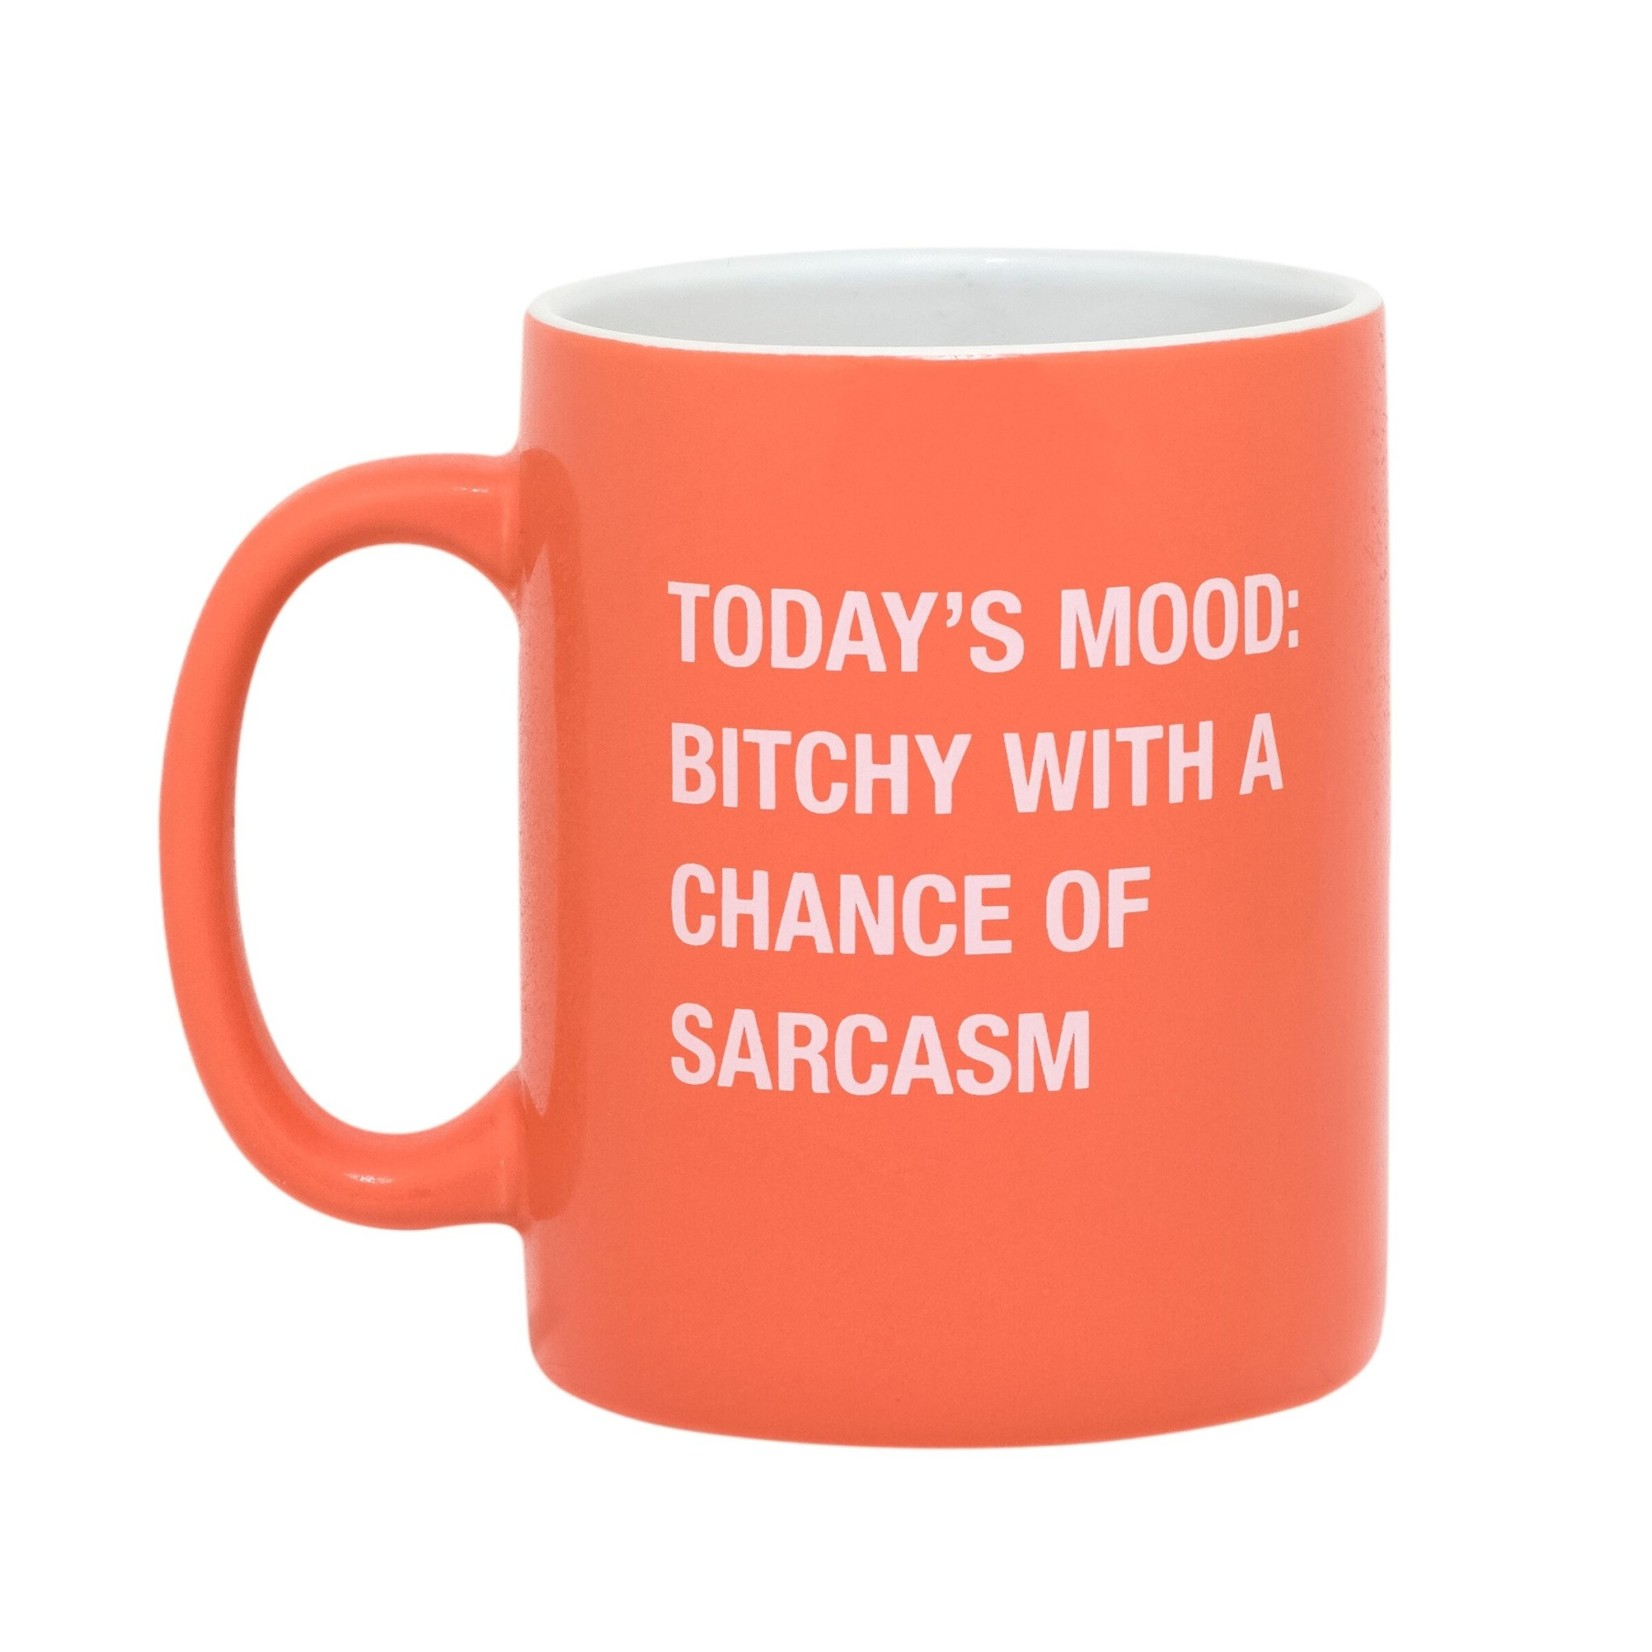 About Face Designs Inc About Face Designs 13.5oz Mug Today's Mood